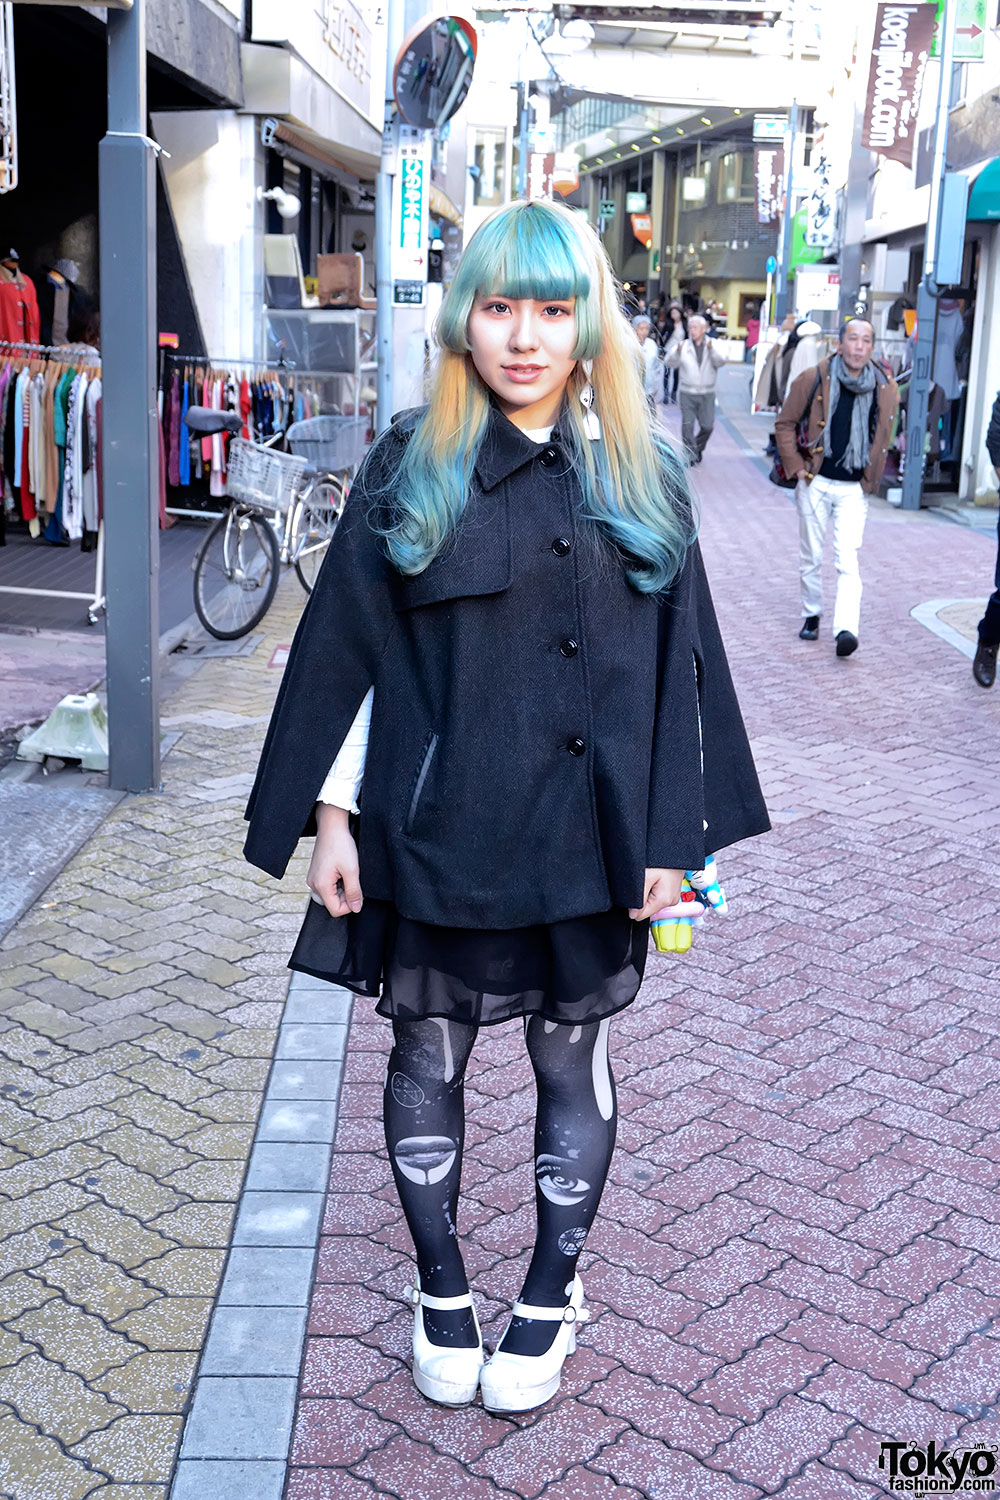 Green-Haired Japanese Girl in Koenji